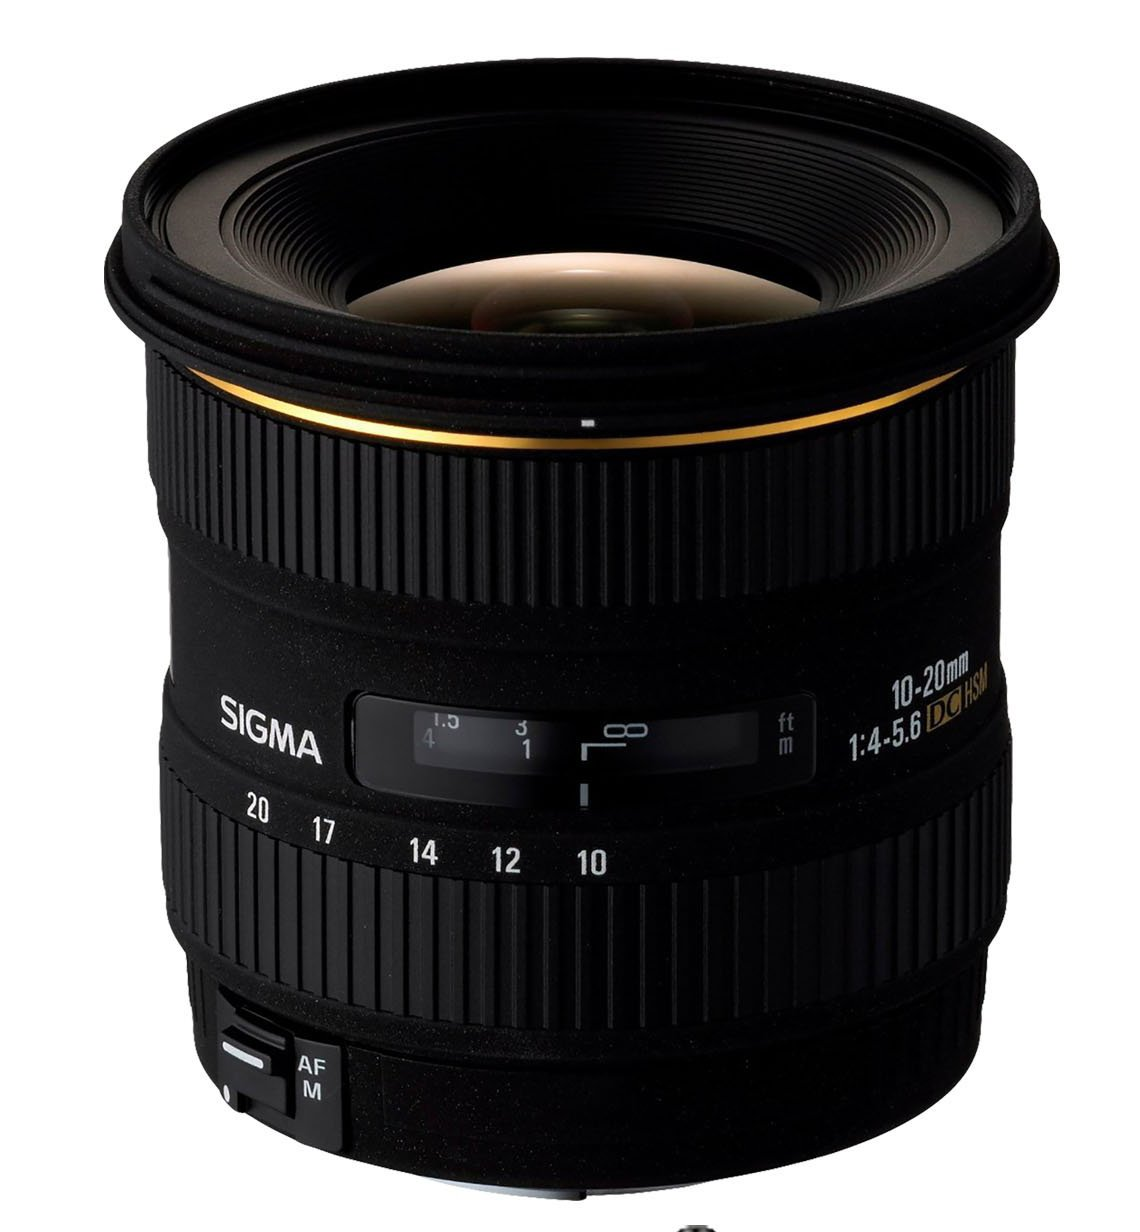 Sigma   DC EX HSM Objetivo para Canon distancia focal mm